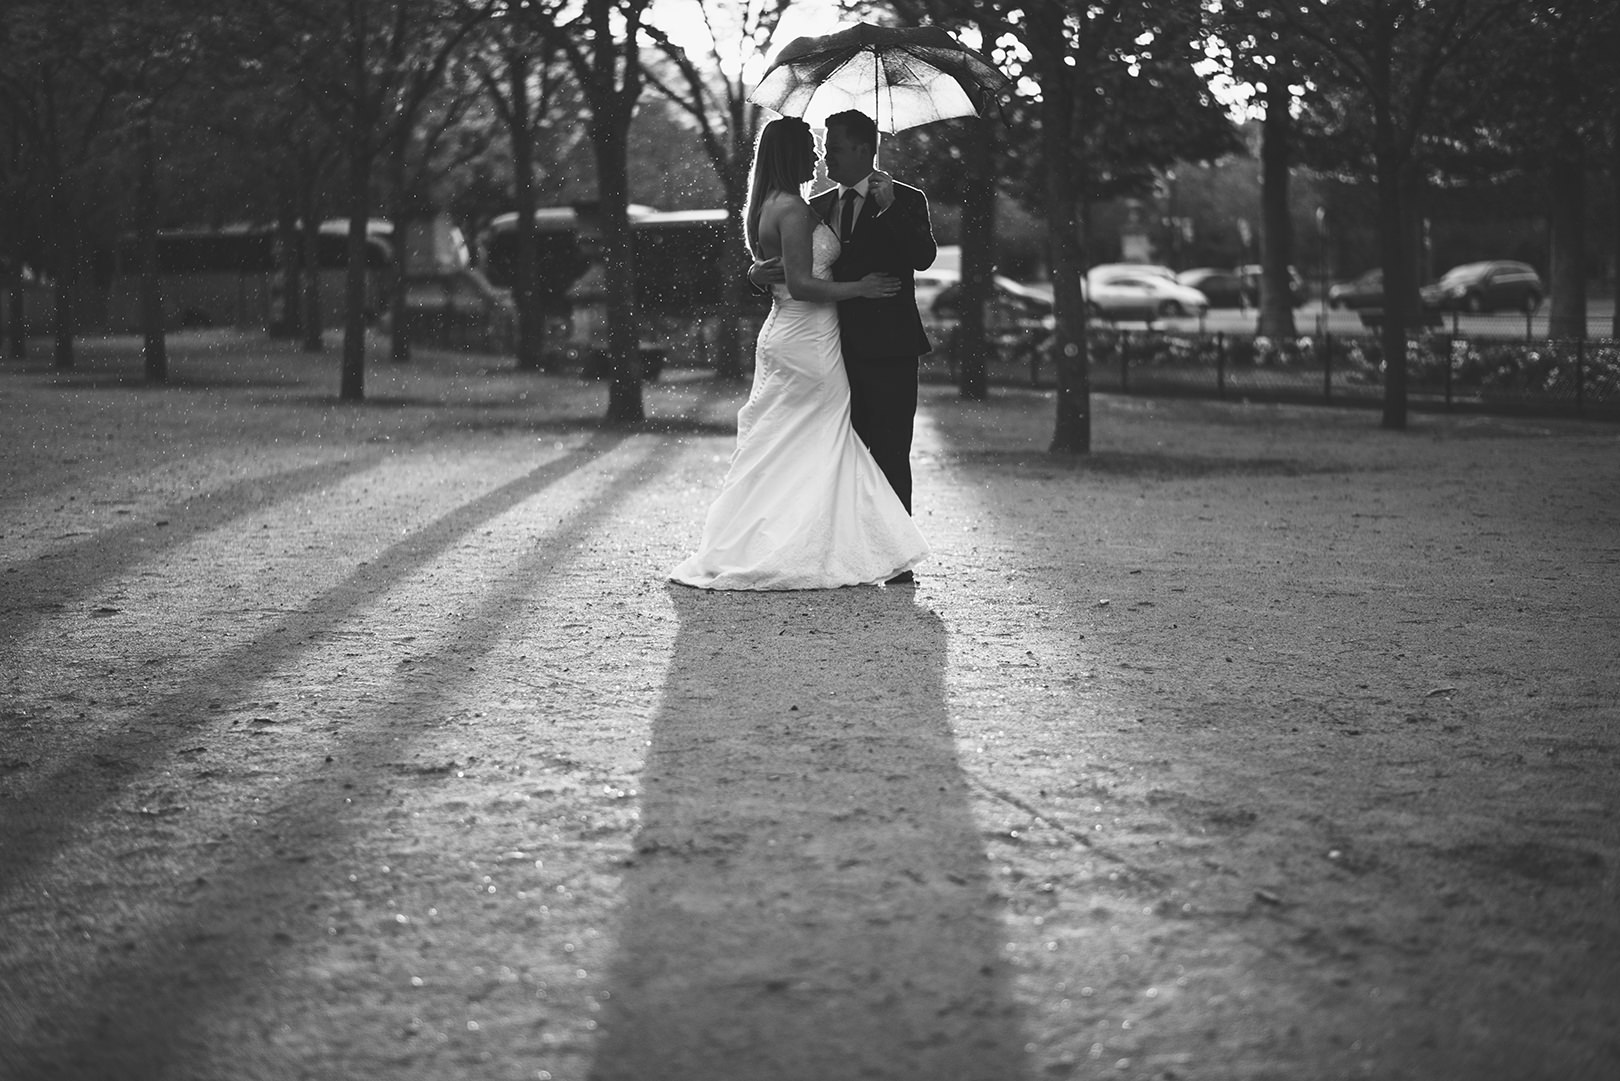 rainy wedding photography Paris